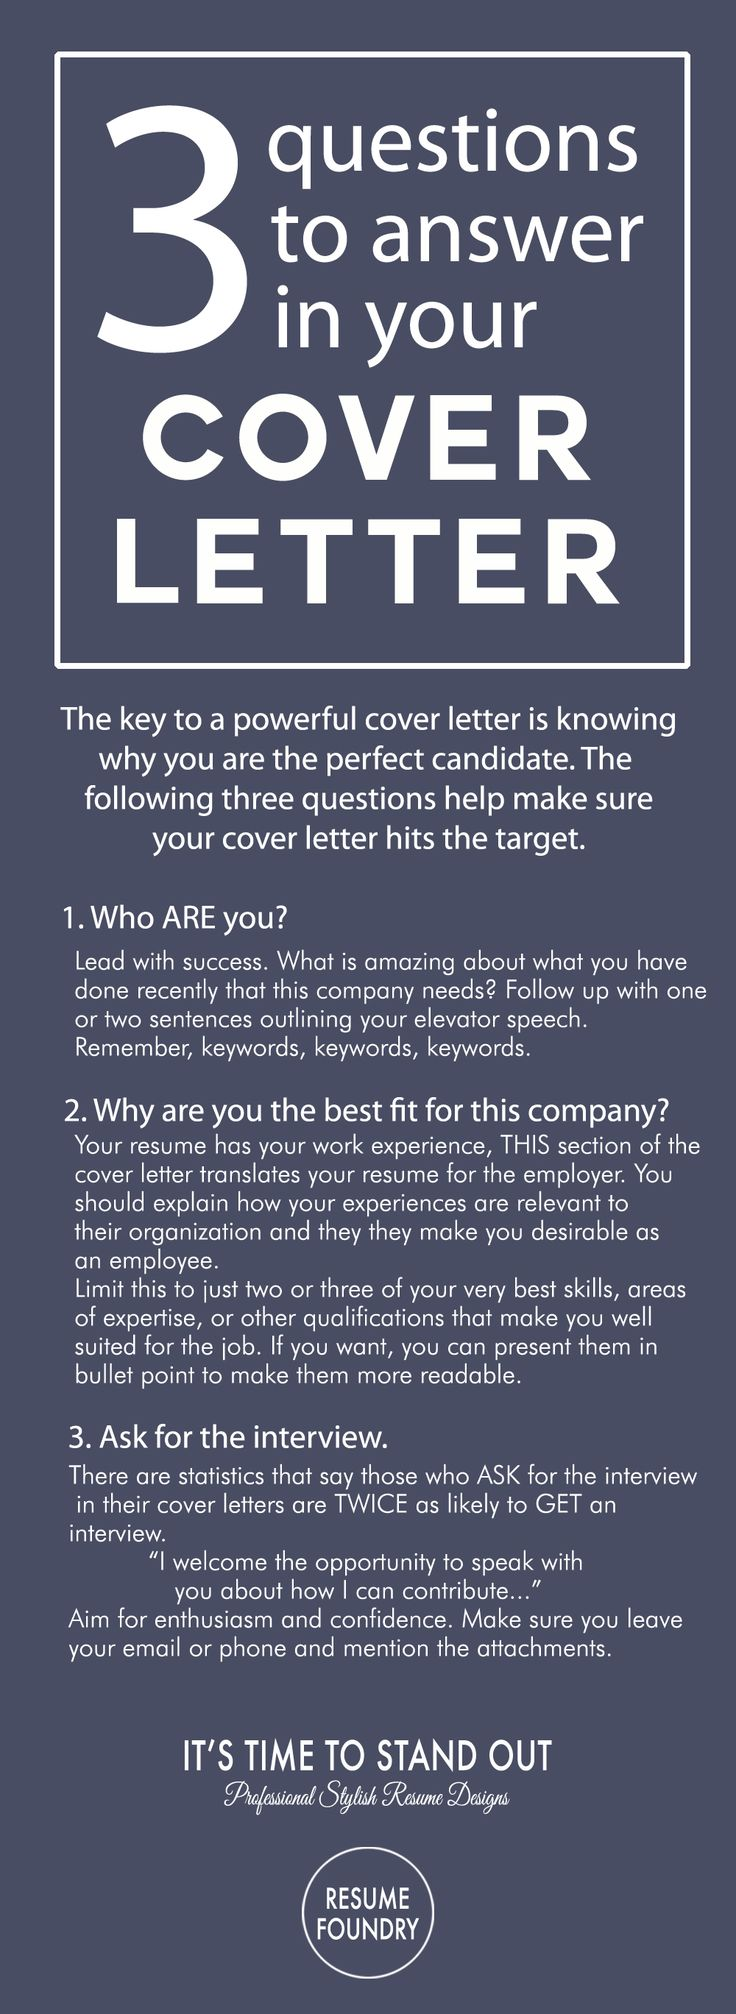 cover letter tips outline how to write a cover letter - How To Write The Perfect Cover Letter For A Job